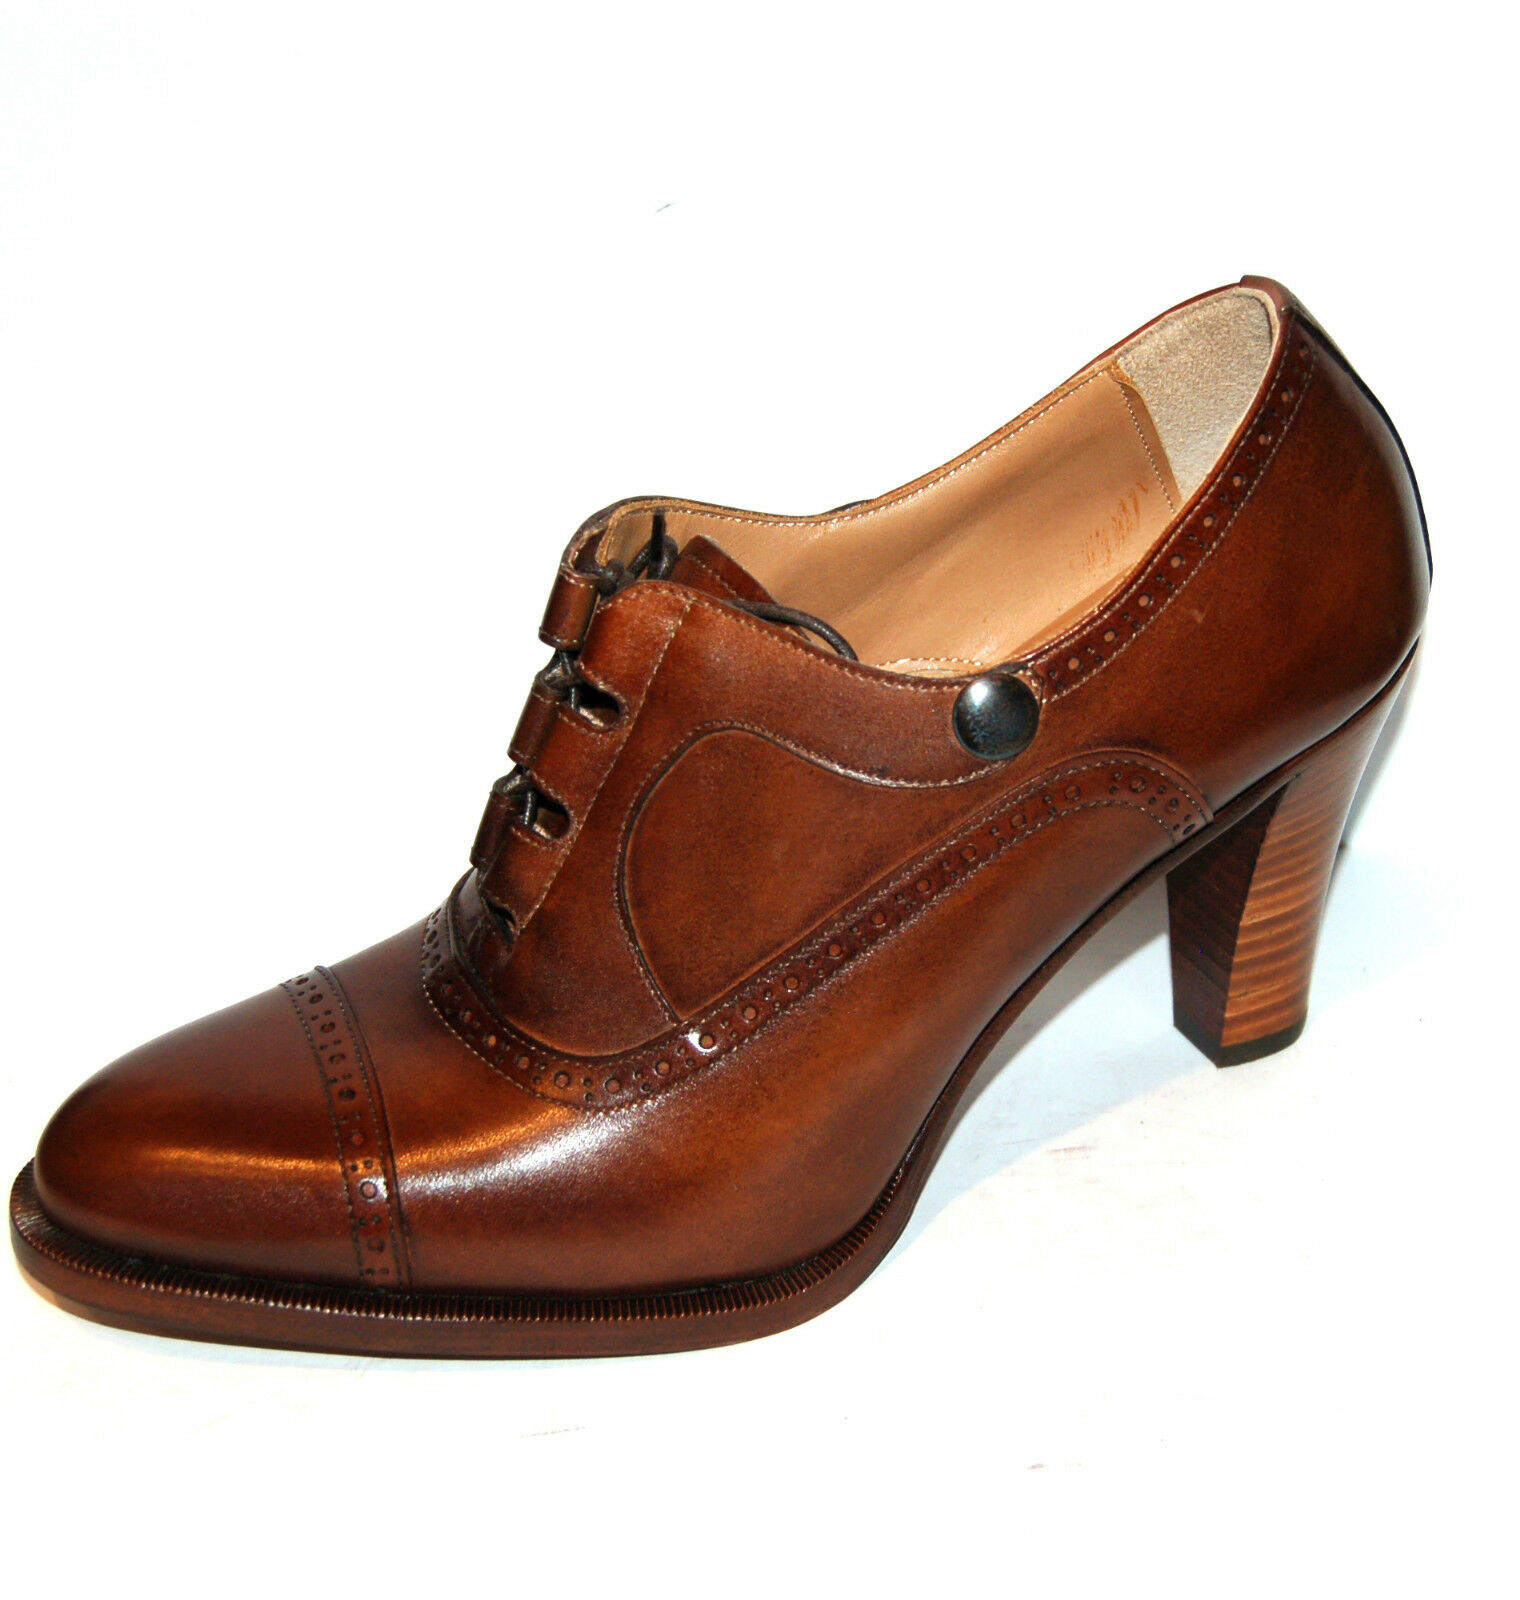 37 eu - WOMAN OXFORD CAPTOE - COCOA CALF - LEATHER SOLE